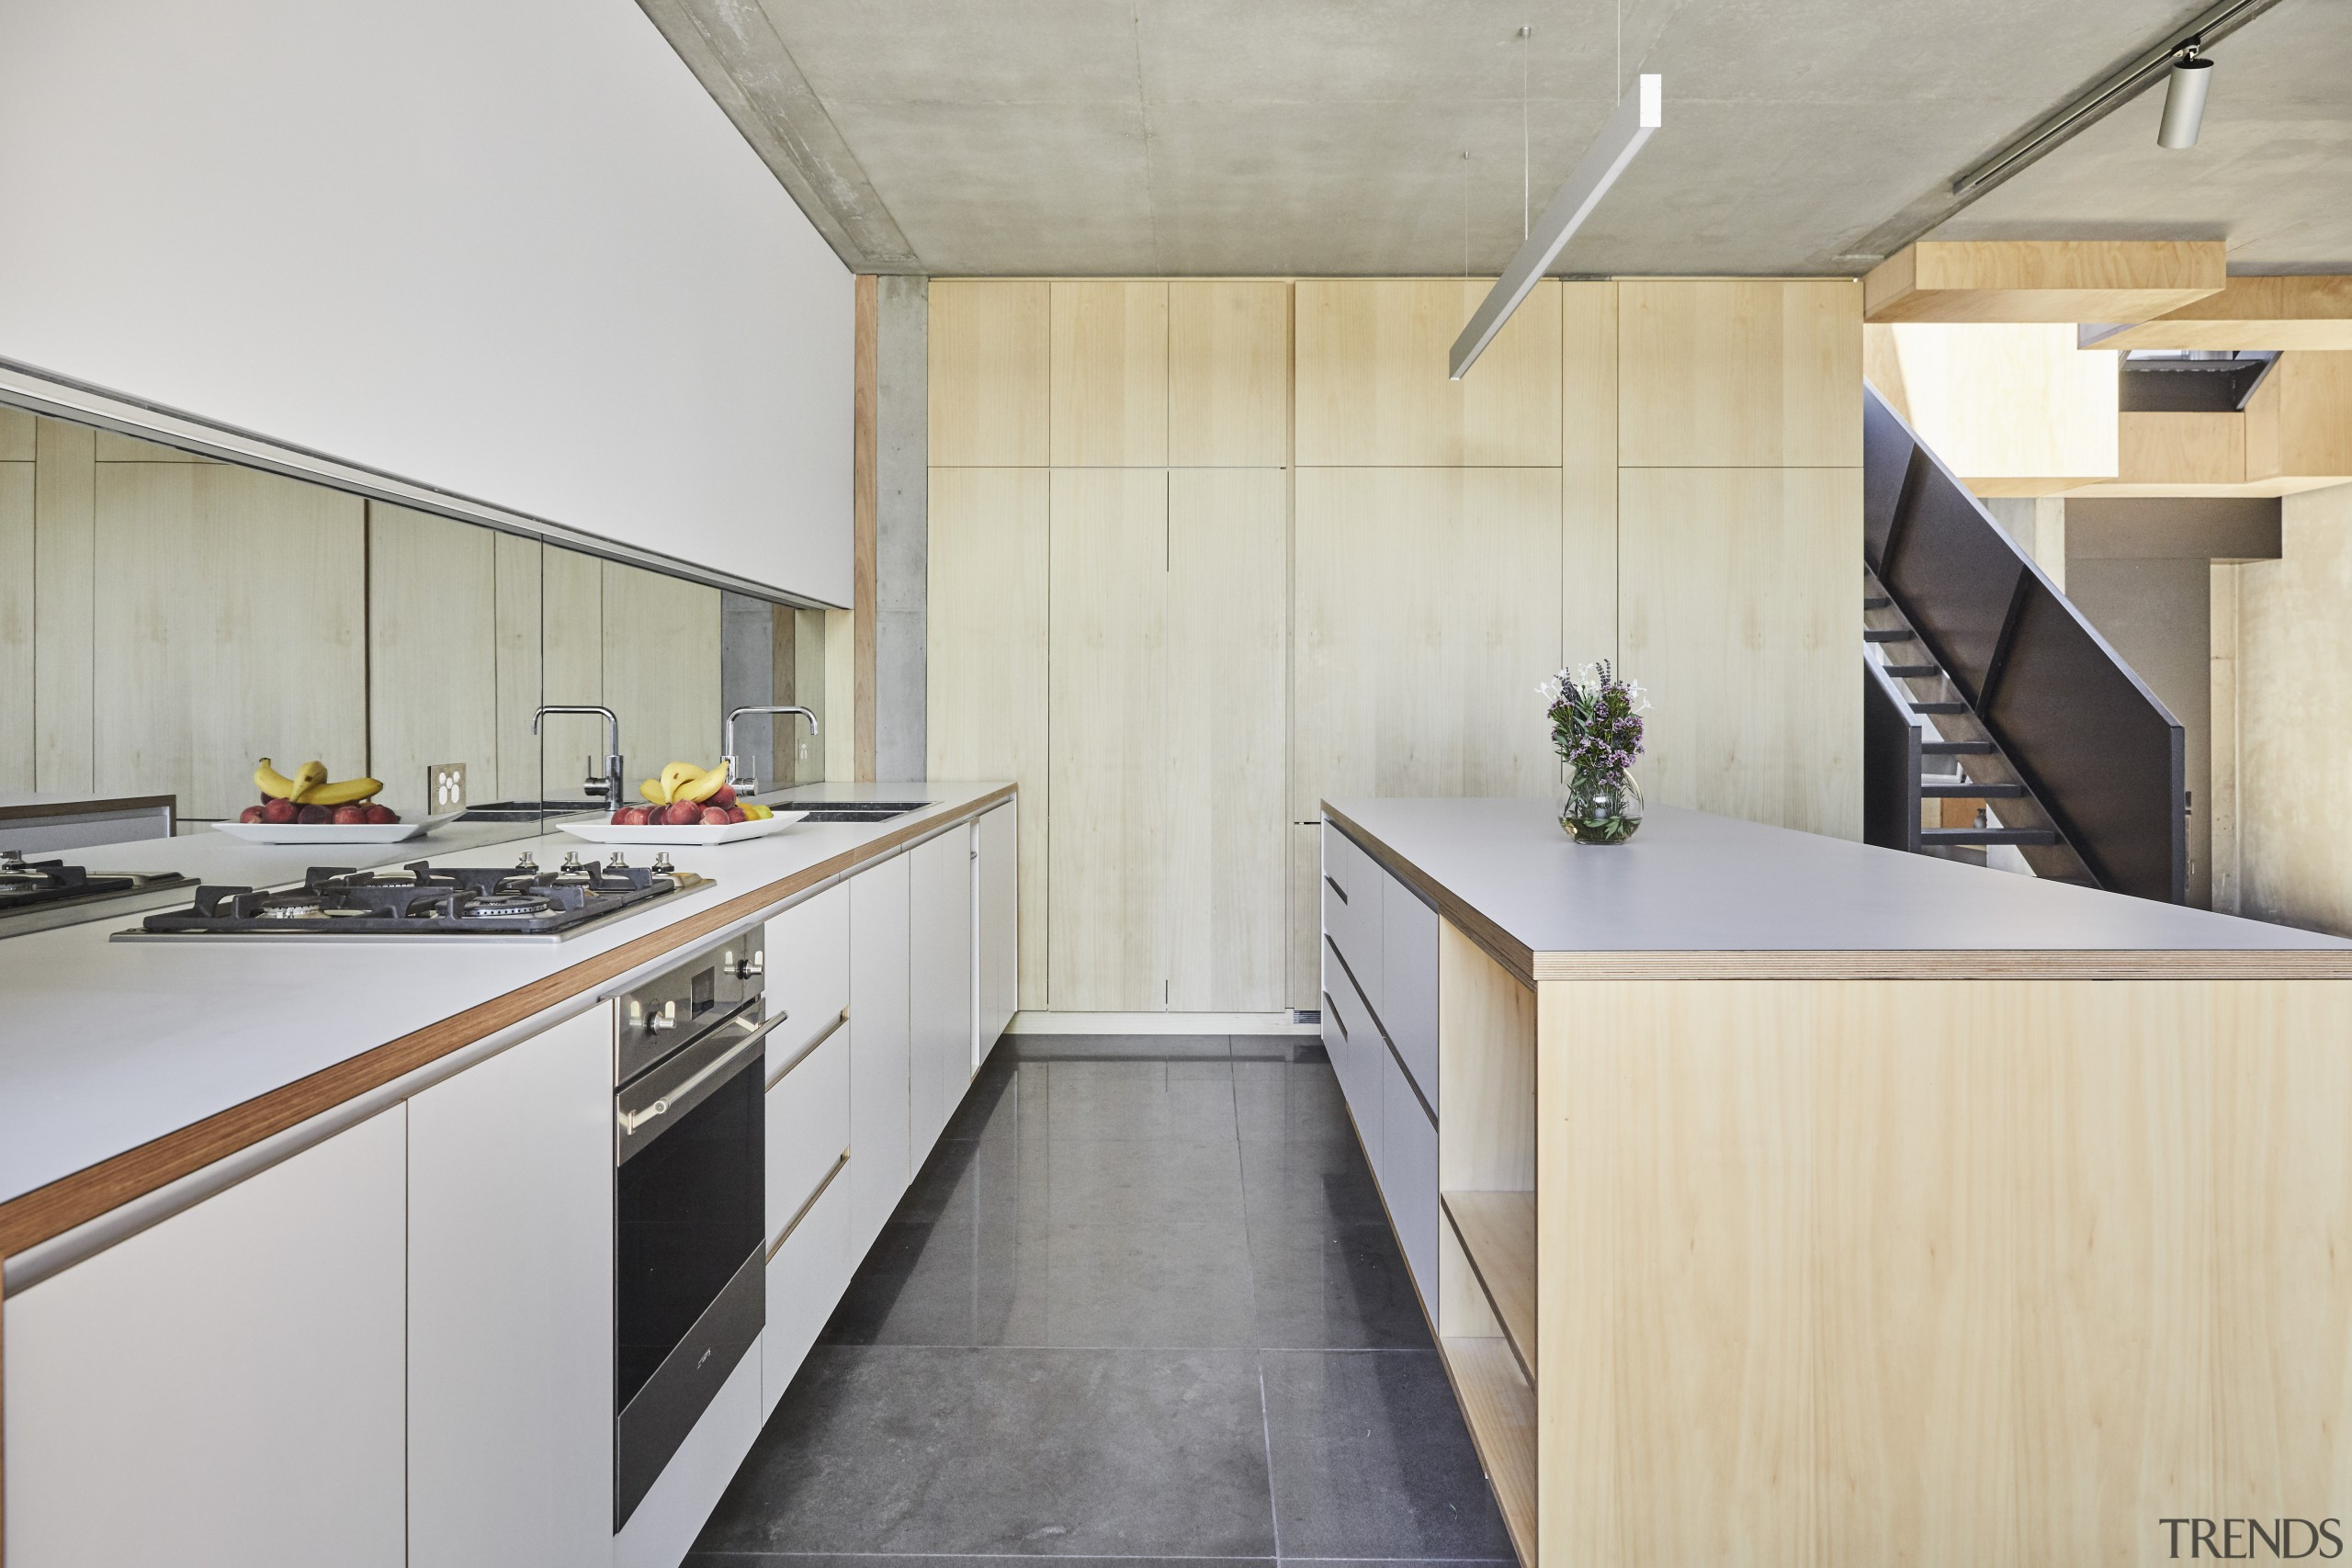 ​​​​​​​This kitchen's lighting is all LED with a architecture, building, cabinetry, ceiling, countertop, floor, flooring, furniture, home, house, interior design, kitchen, loft, material property, plywood, property, real estate, room, wood, yellow, gray